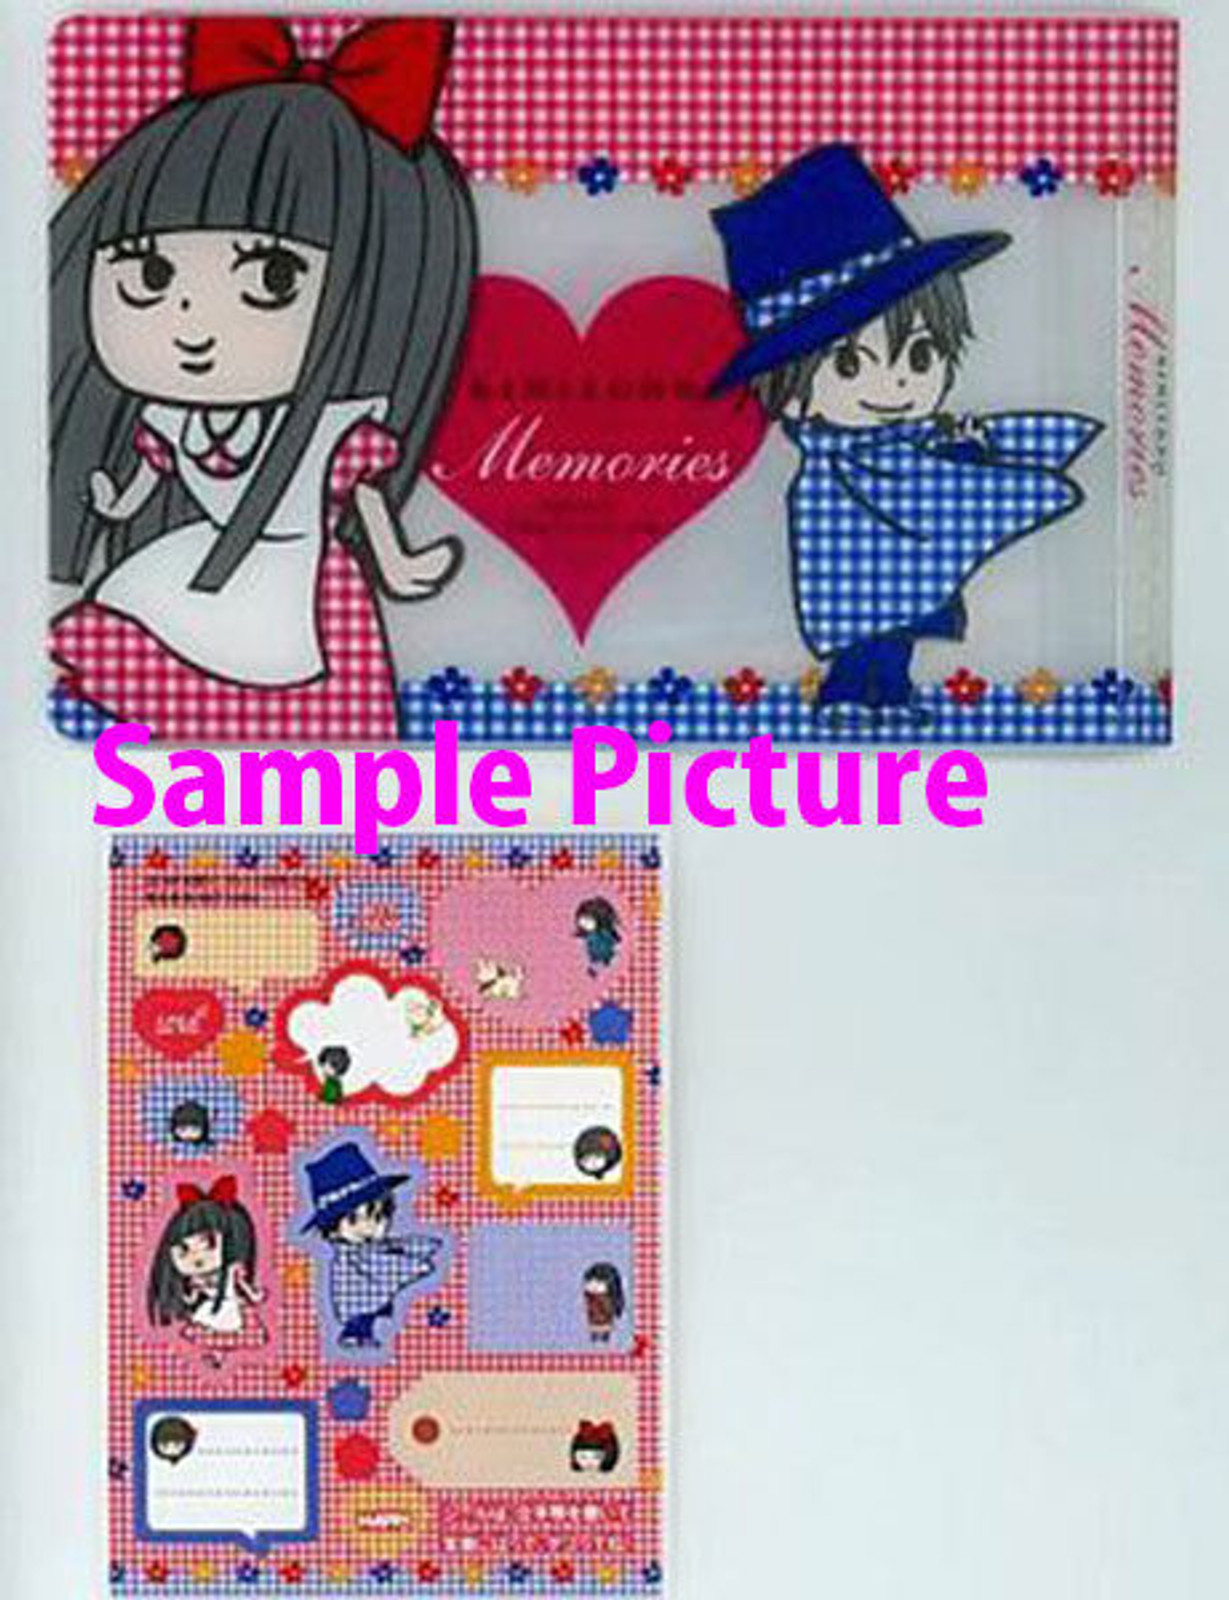 Kimi ni Todoke Photo Album & Stickers Set Margaret Magazine Limited JAPAN ANIME